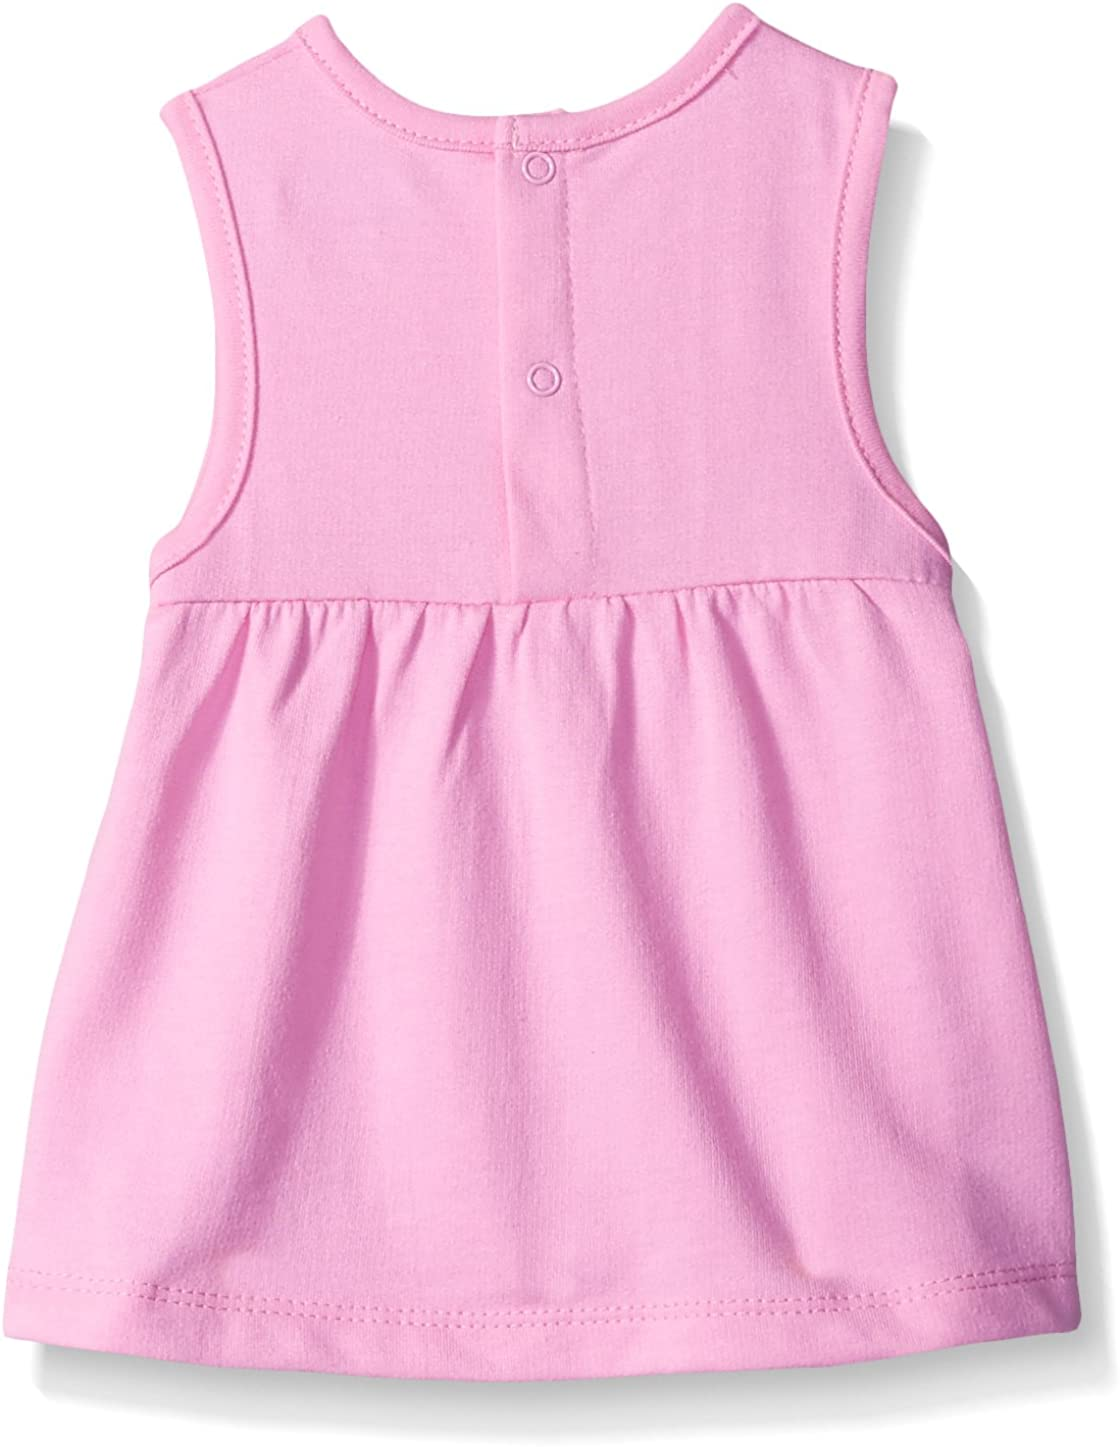 BON BEBE Baby Girls 2 Piece Set with French Terry Jumper and Bodysuit